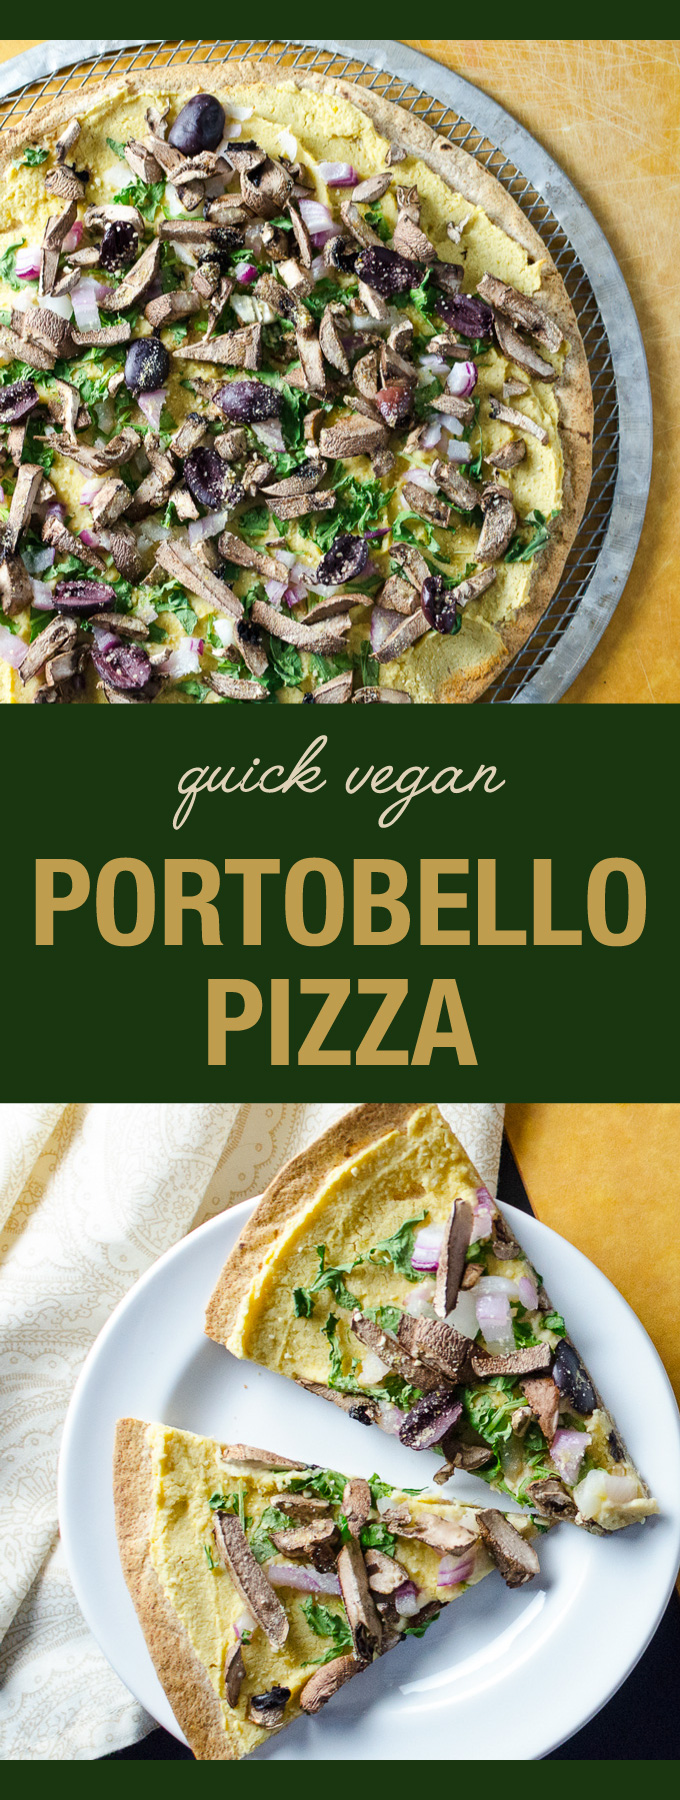 Quick Vegan Portobello Pizza - using a large tortilla as a pizza crust makes this pizza recipe a snap to put together - use a gluten-free tortilla to make it gluten-free | VeggiePrimer.com